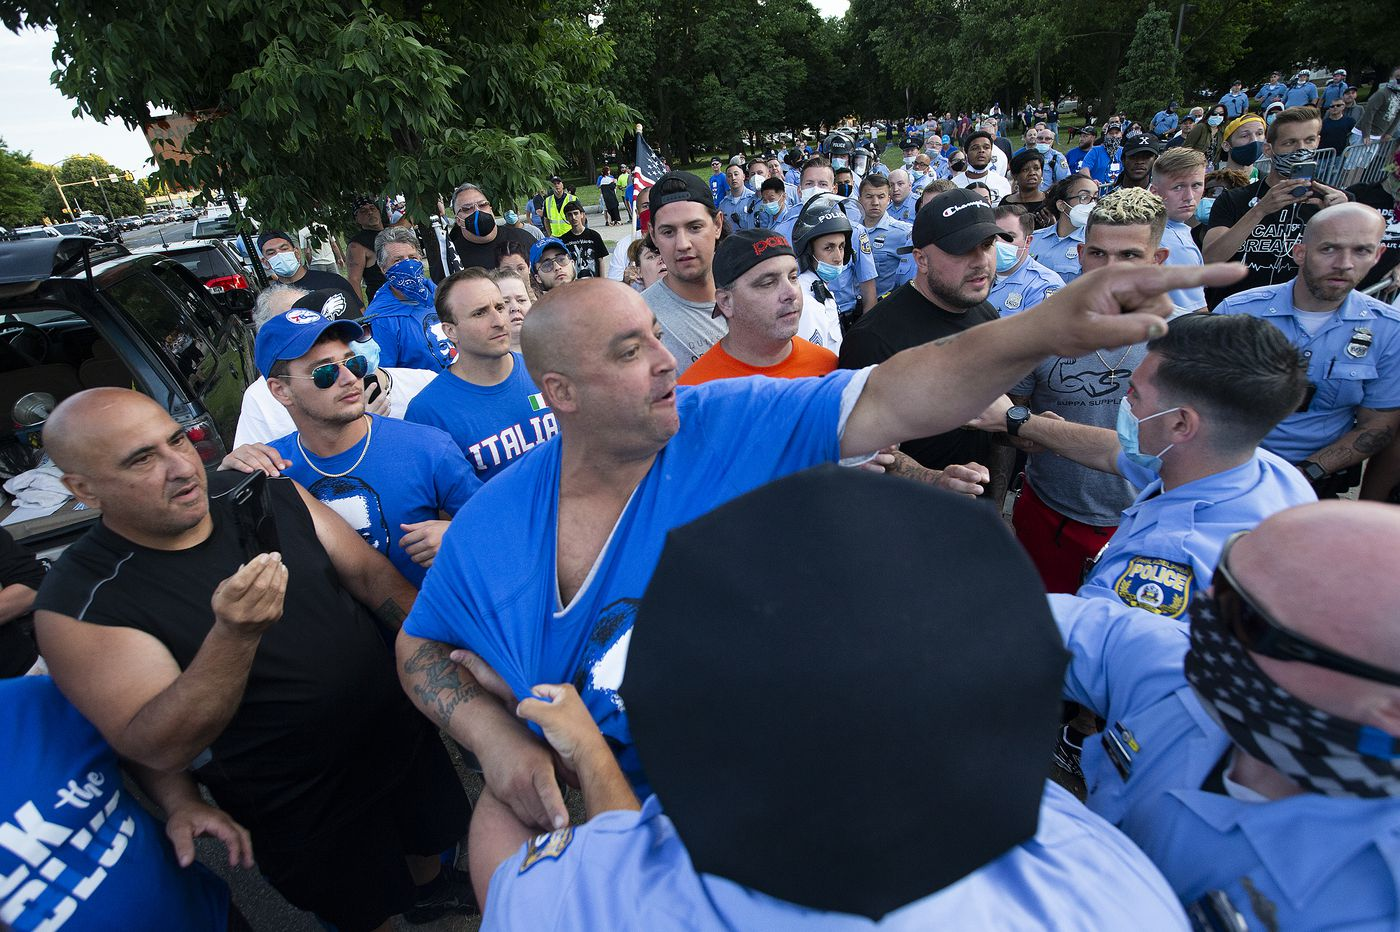 Protest observers say police allowed South Philly Columbus 'defenders' to assault them